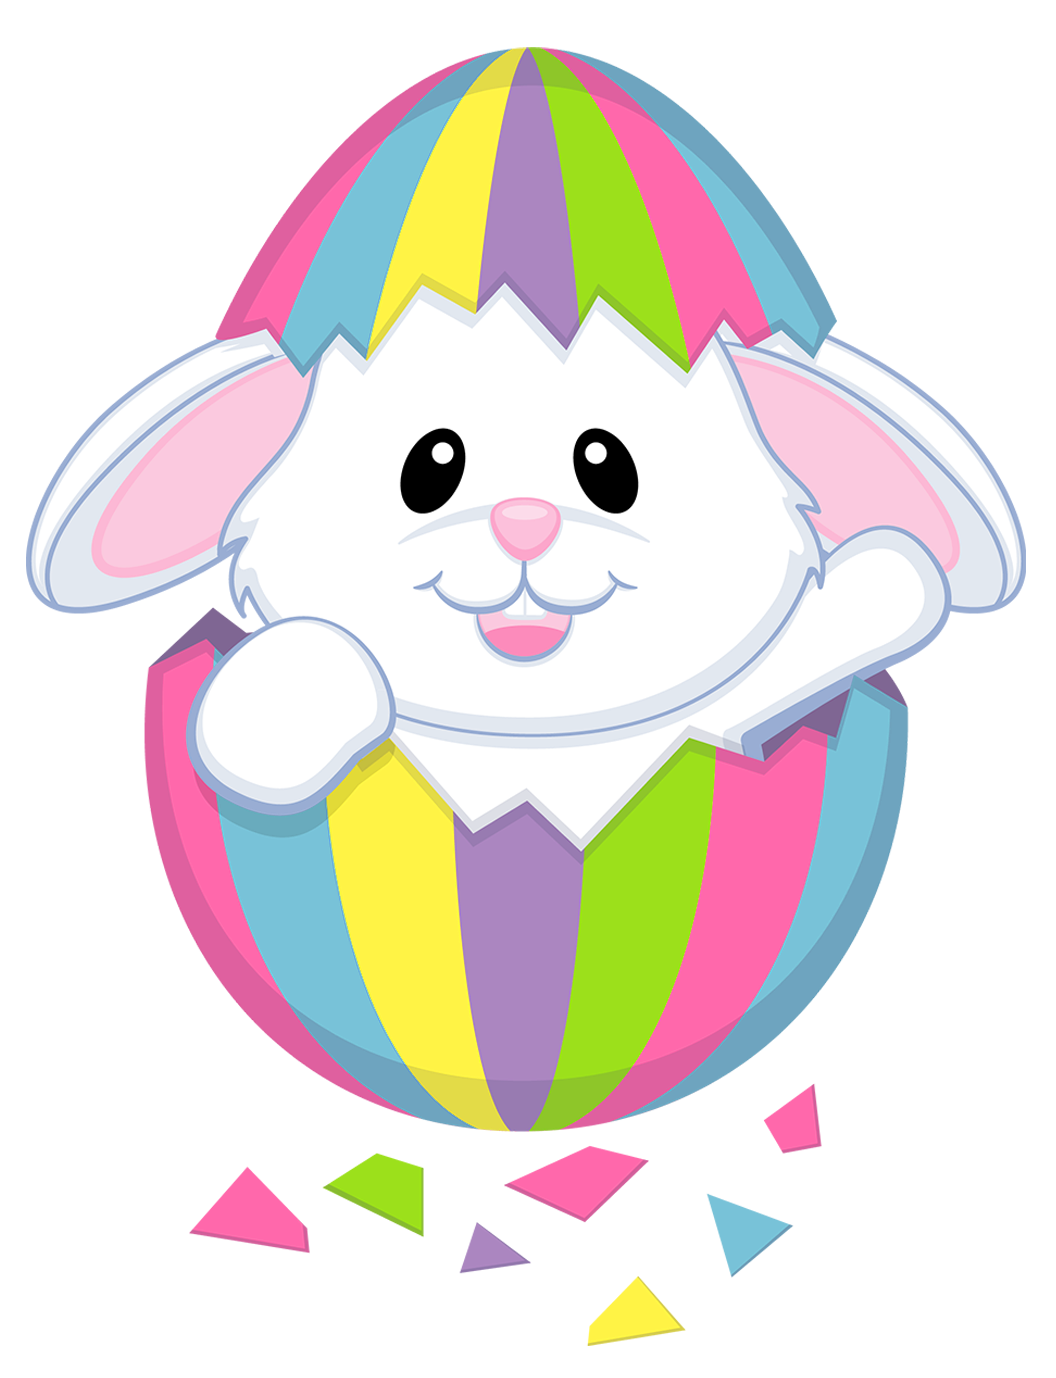 easter bunny clipart best easter eggs pinterest easter bunny rh pinterest com clipart easter religious clipart easter egg hunt